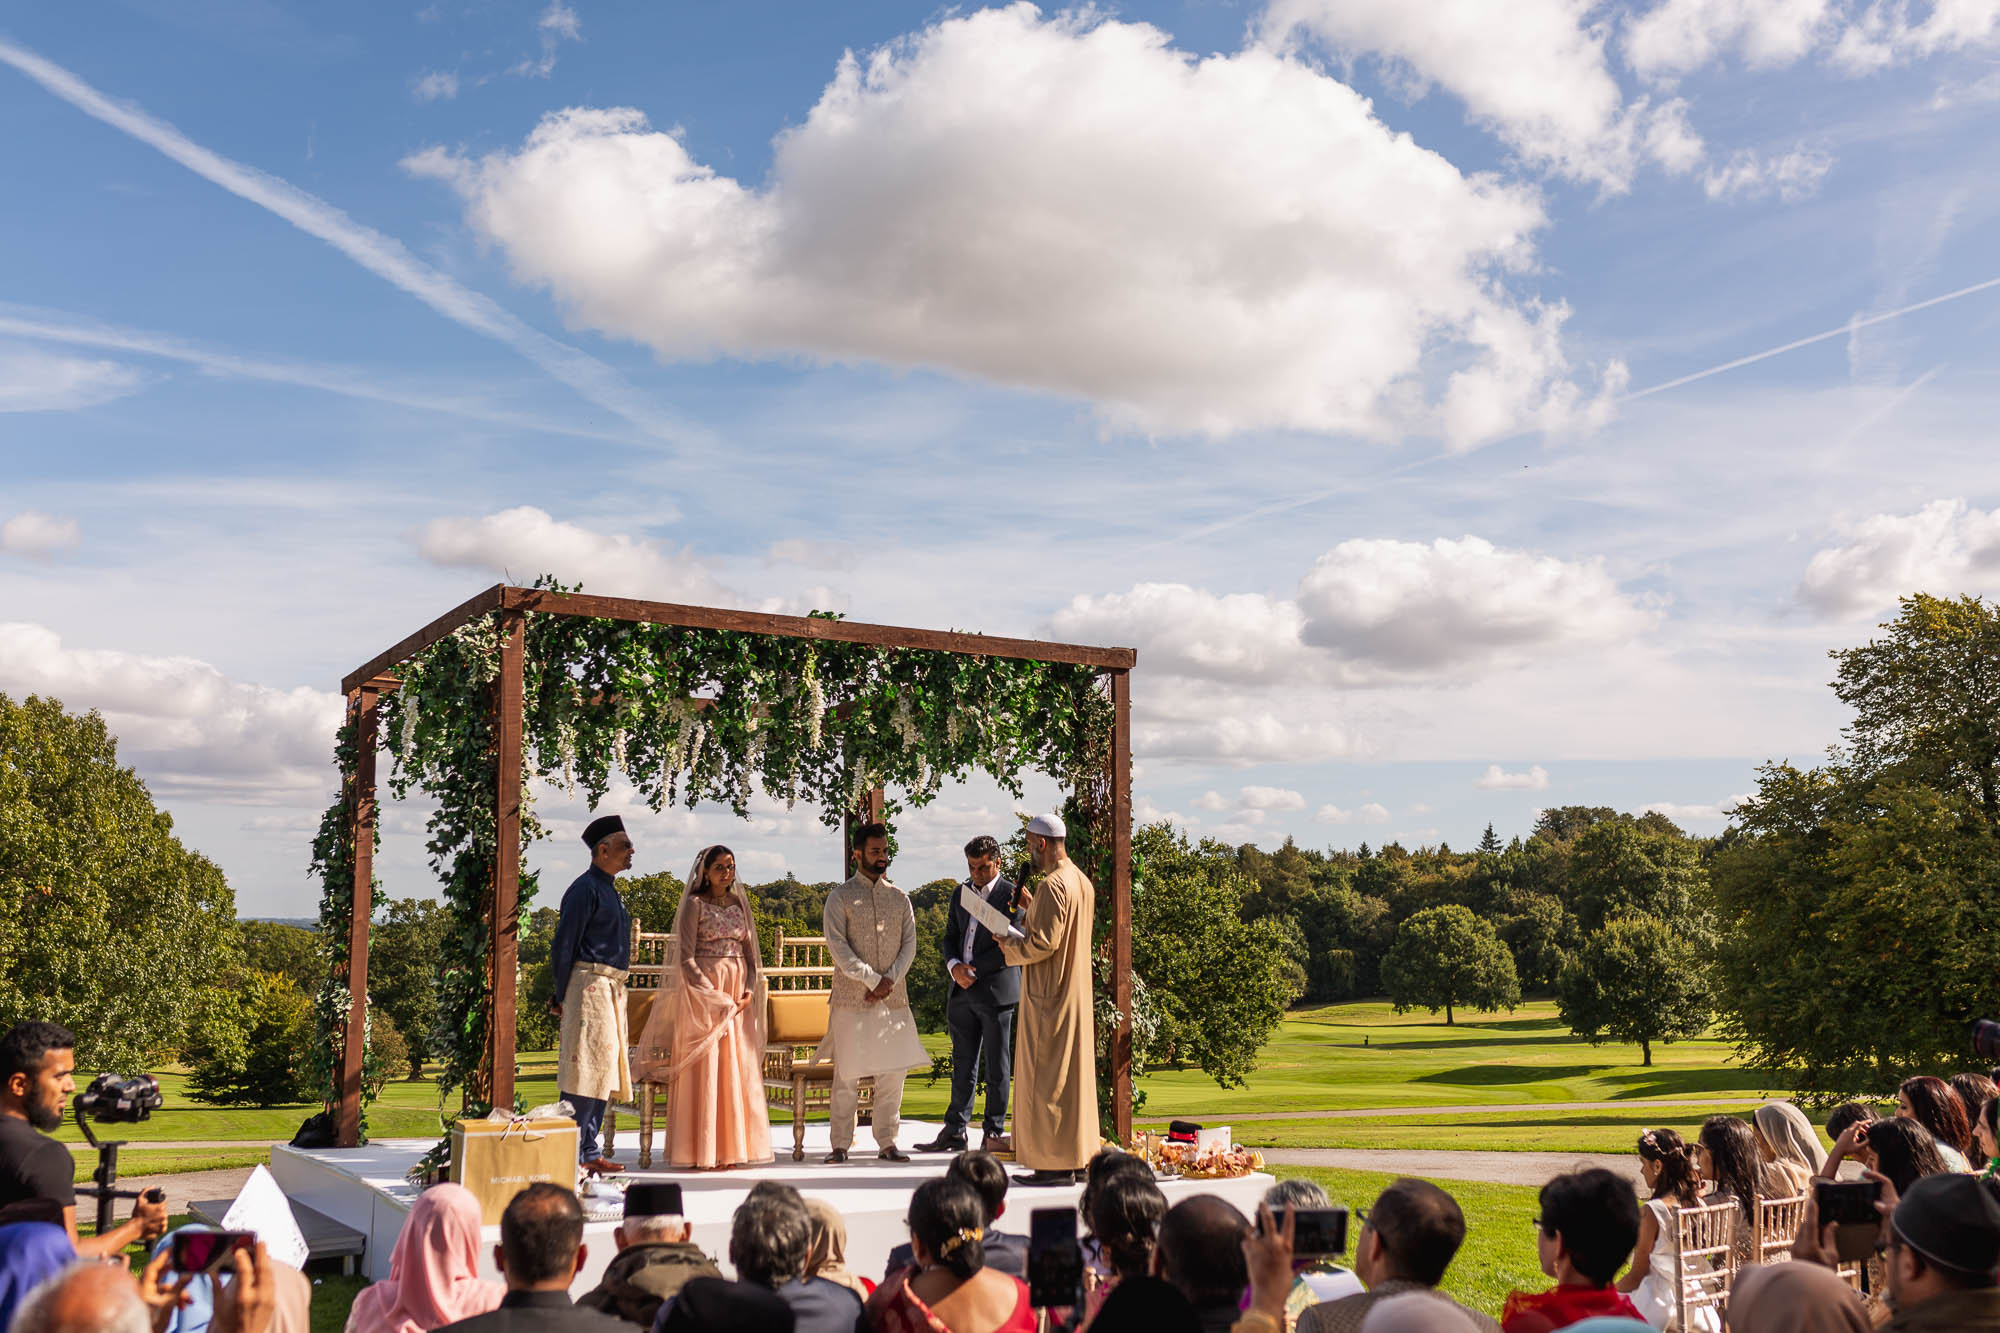 Rudding Park, Yorkshire, Asian Wedding Photography, outdoor nikkah ceremony